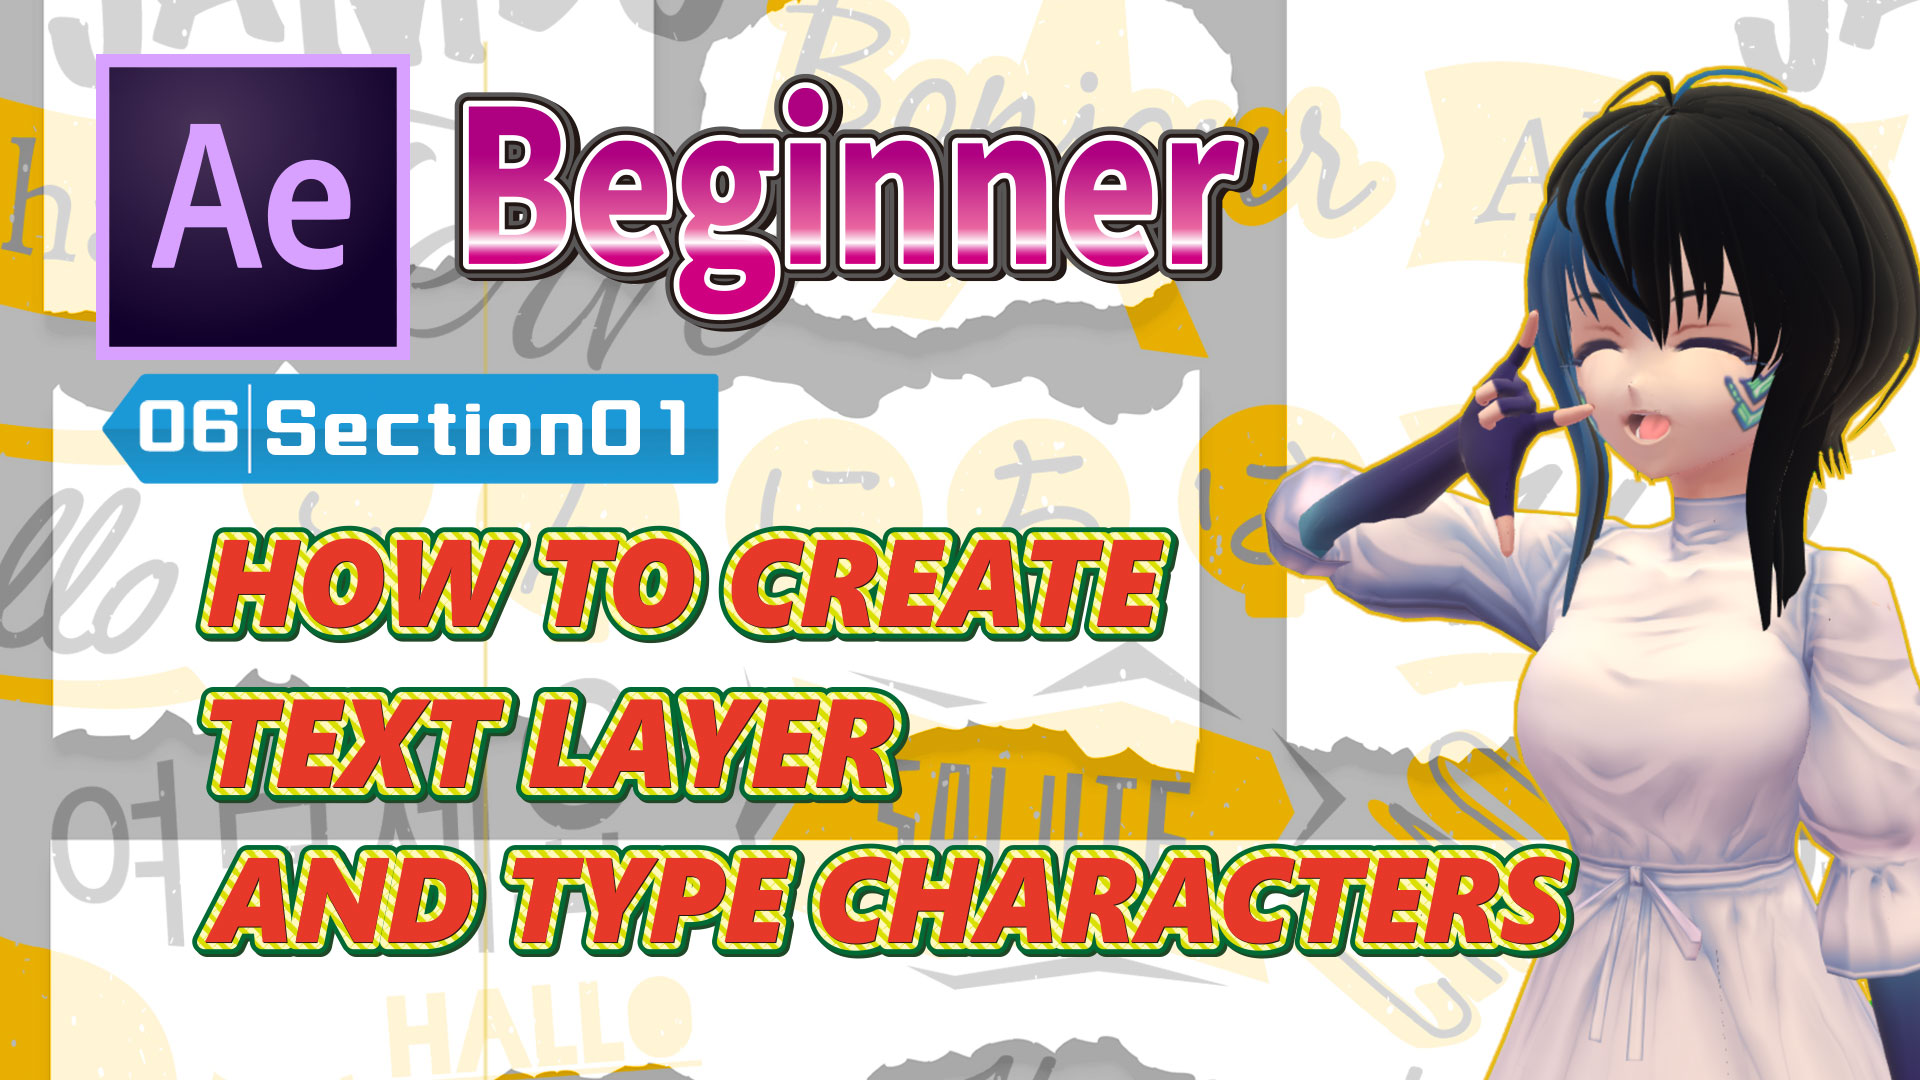 HOW TO CREATE TEXT LAYER AND TYPE CHARACTERS